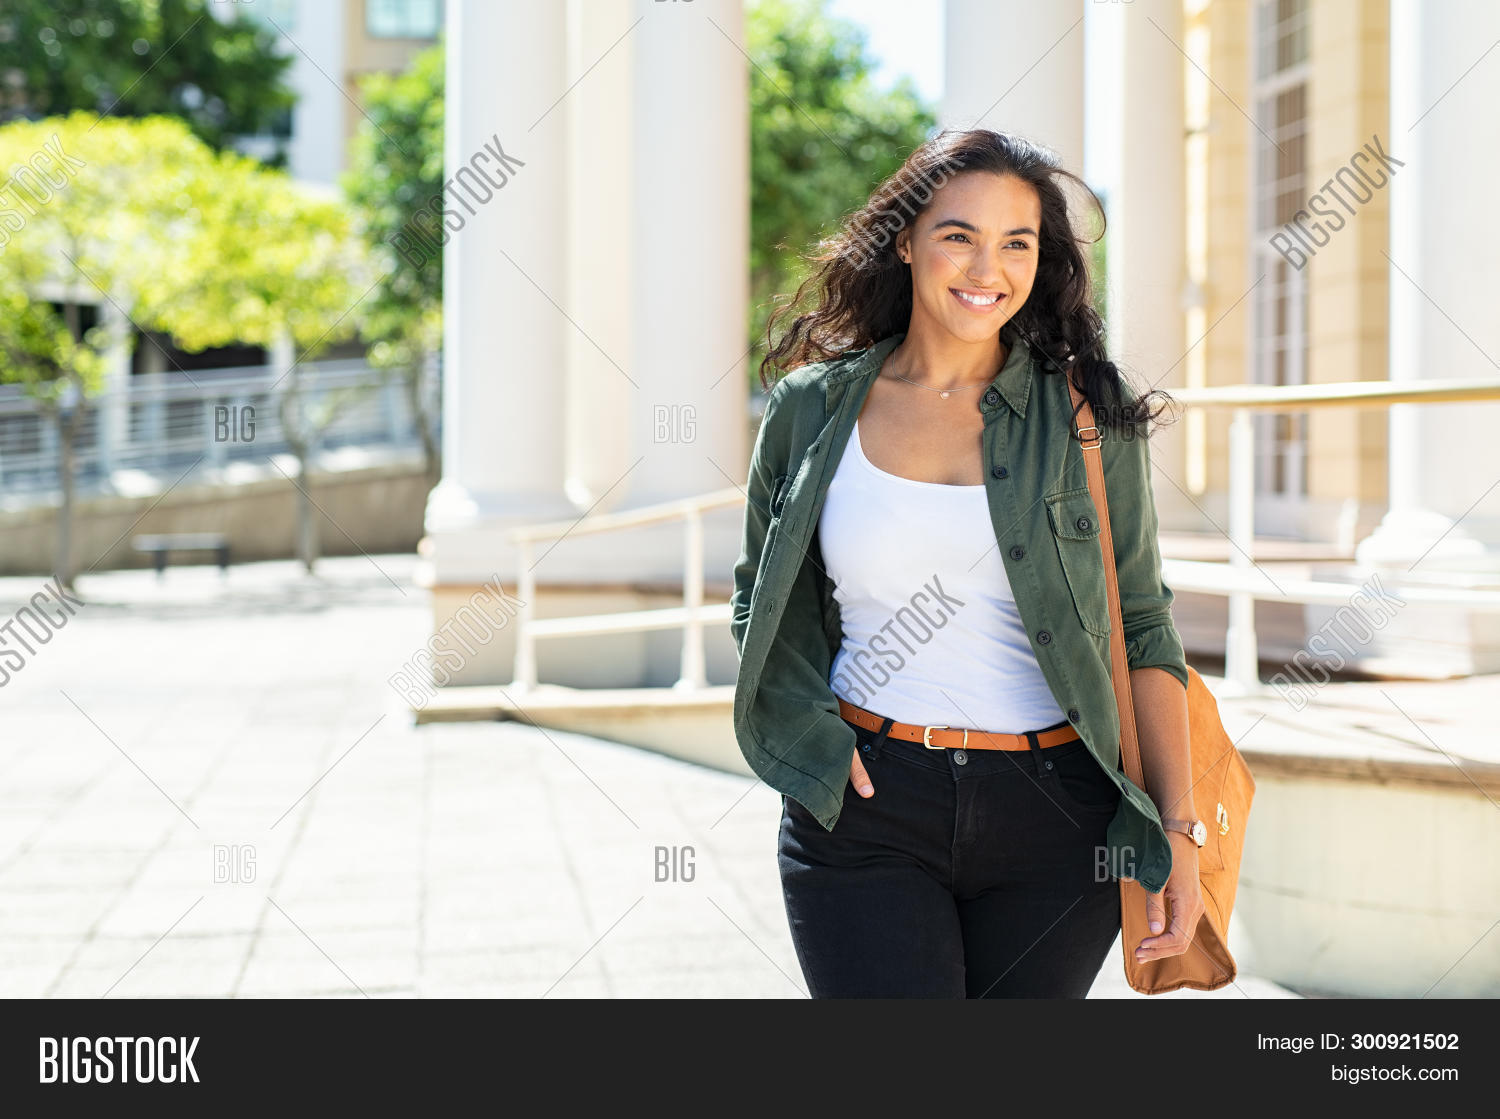 attractive,beautiful,beauty,carefree,casual,casual girl,cheerful,city,confident,cool,copy space,curvy,curvy girl,curvy woman,education,fashion,girl,happy,hispanic,latin,latin woman,natural,outdoor,people,positive,pretty,pride,proud,proud woman,real,real people,relaxing,satisfaction,shopping,smile,street,stylish,success,successful,summer,toothy smile,travelling,university student,urban,urban background,walk,walking street,woman walking away,young,youth